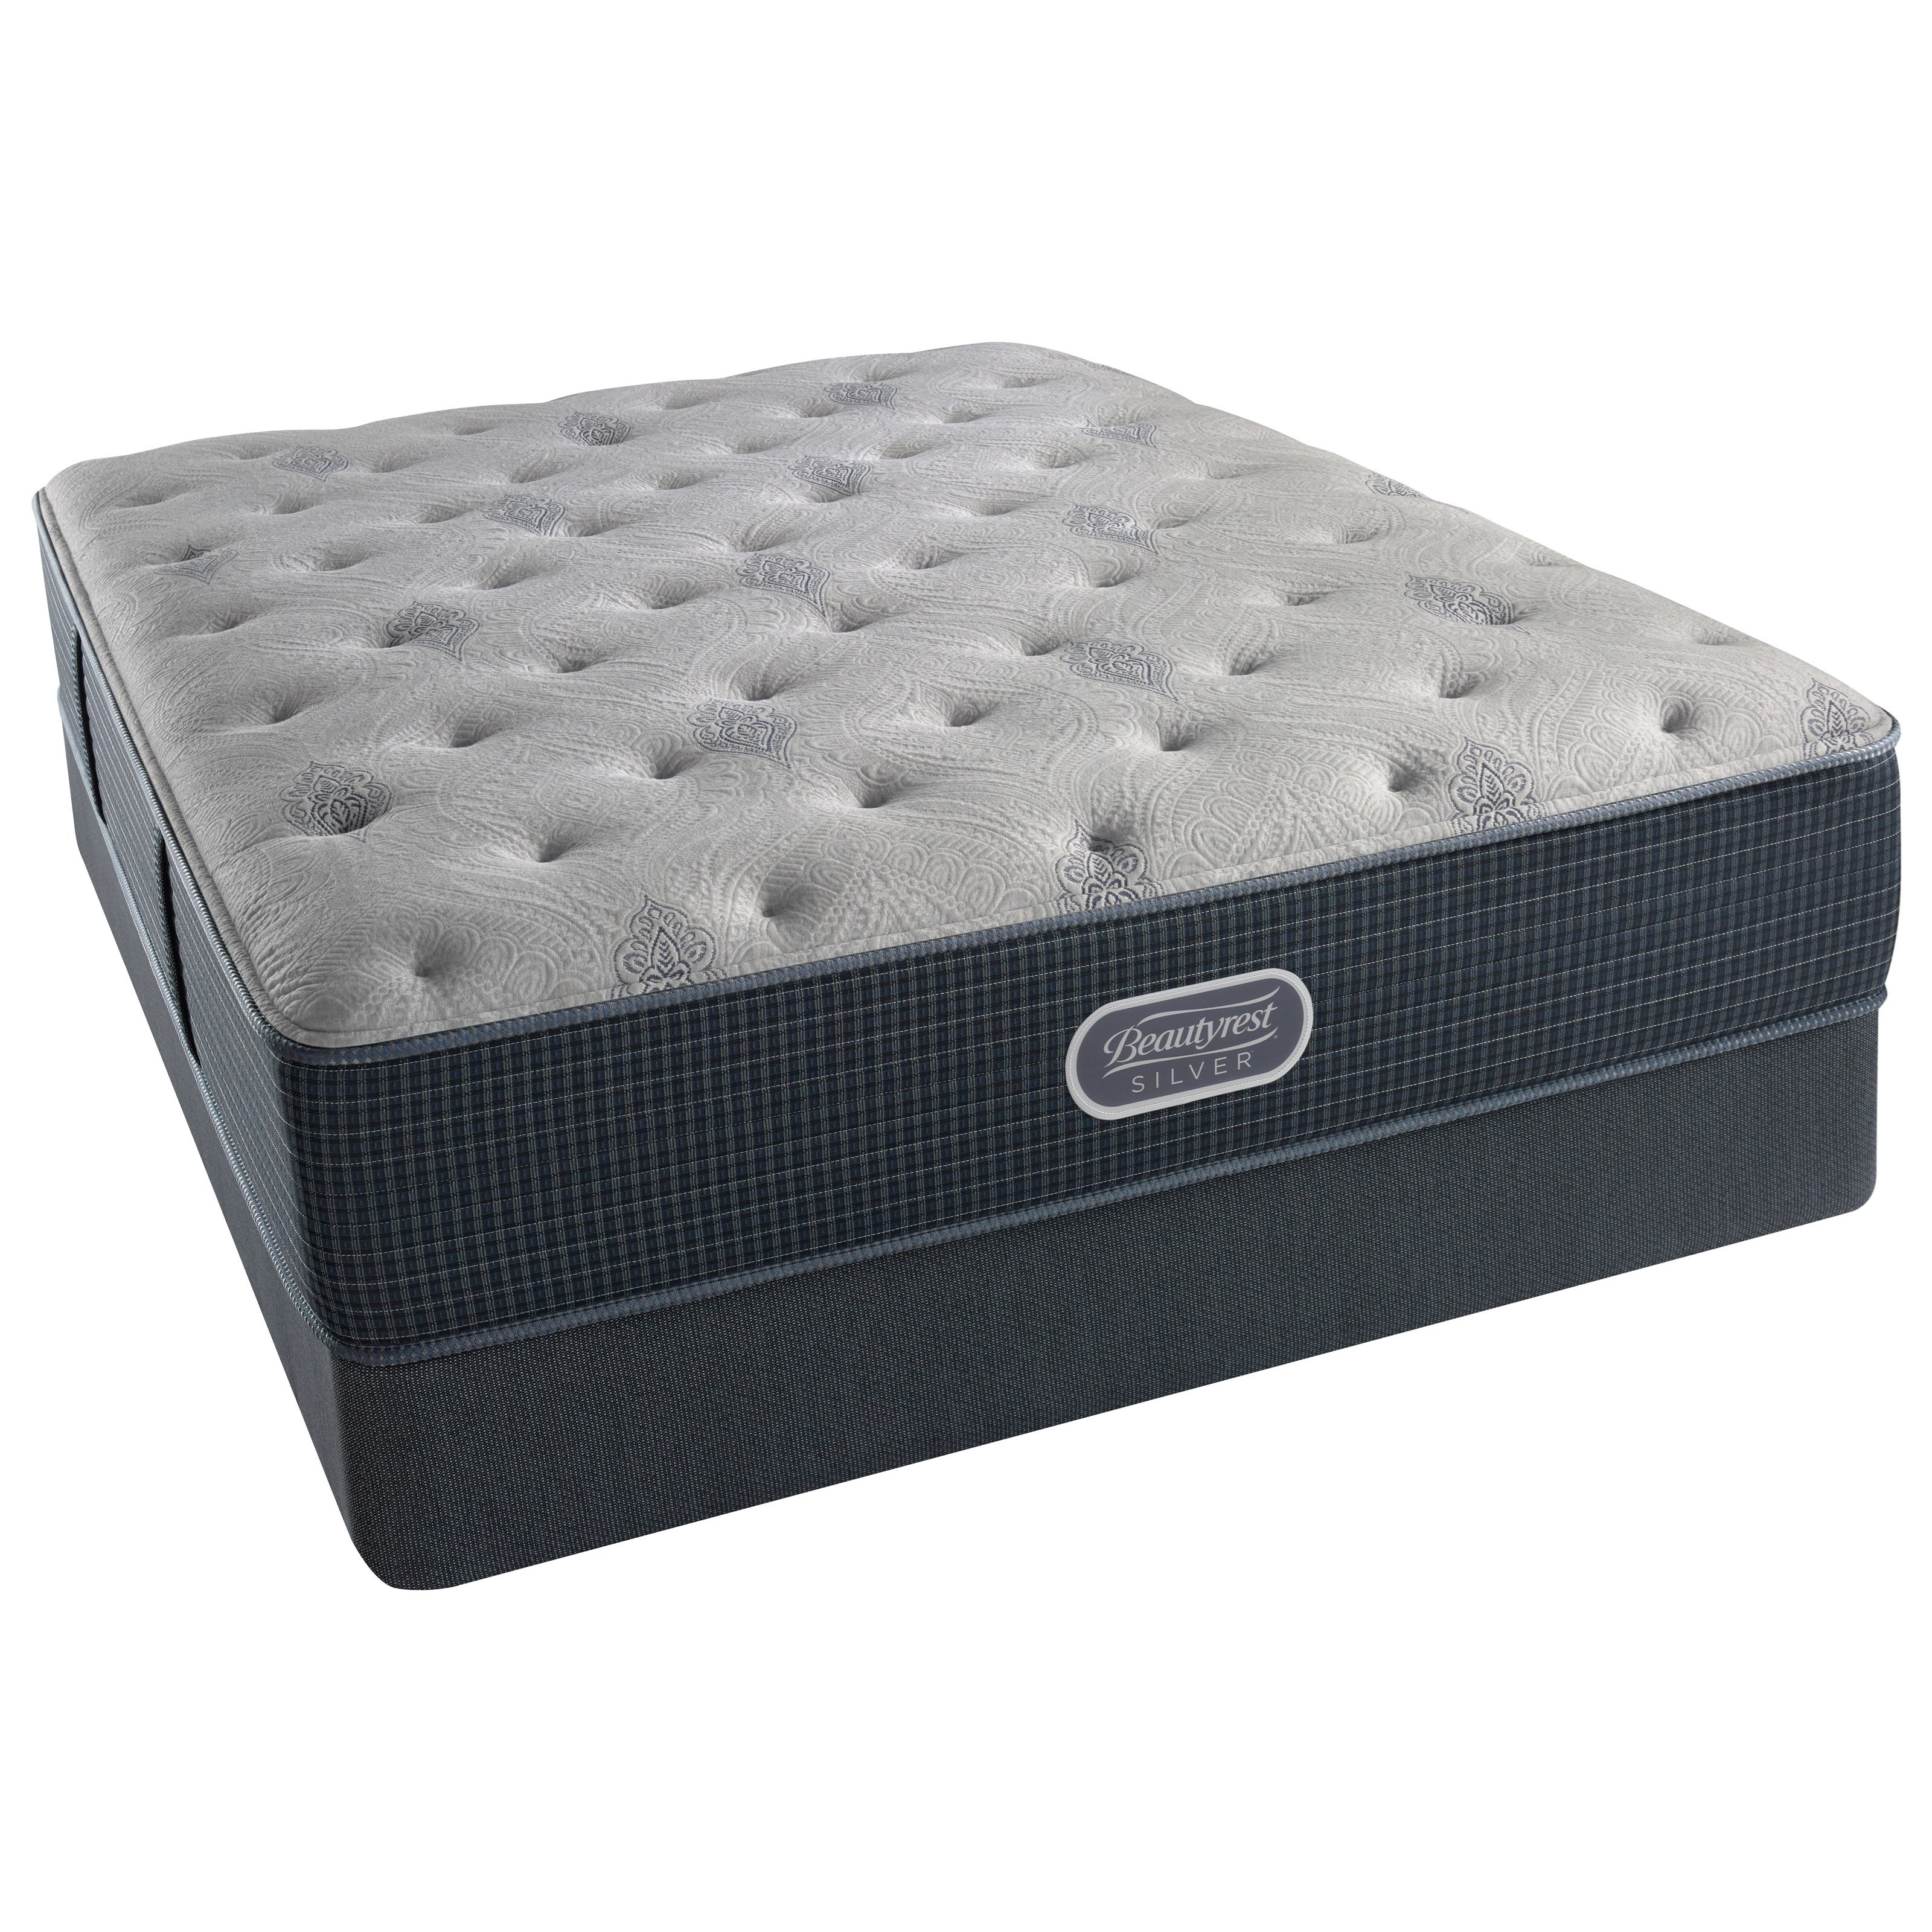 Beautyrest Silver Twin Set